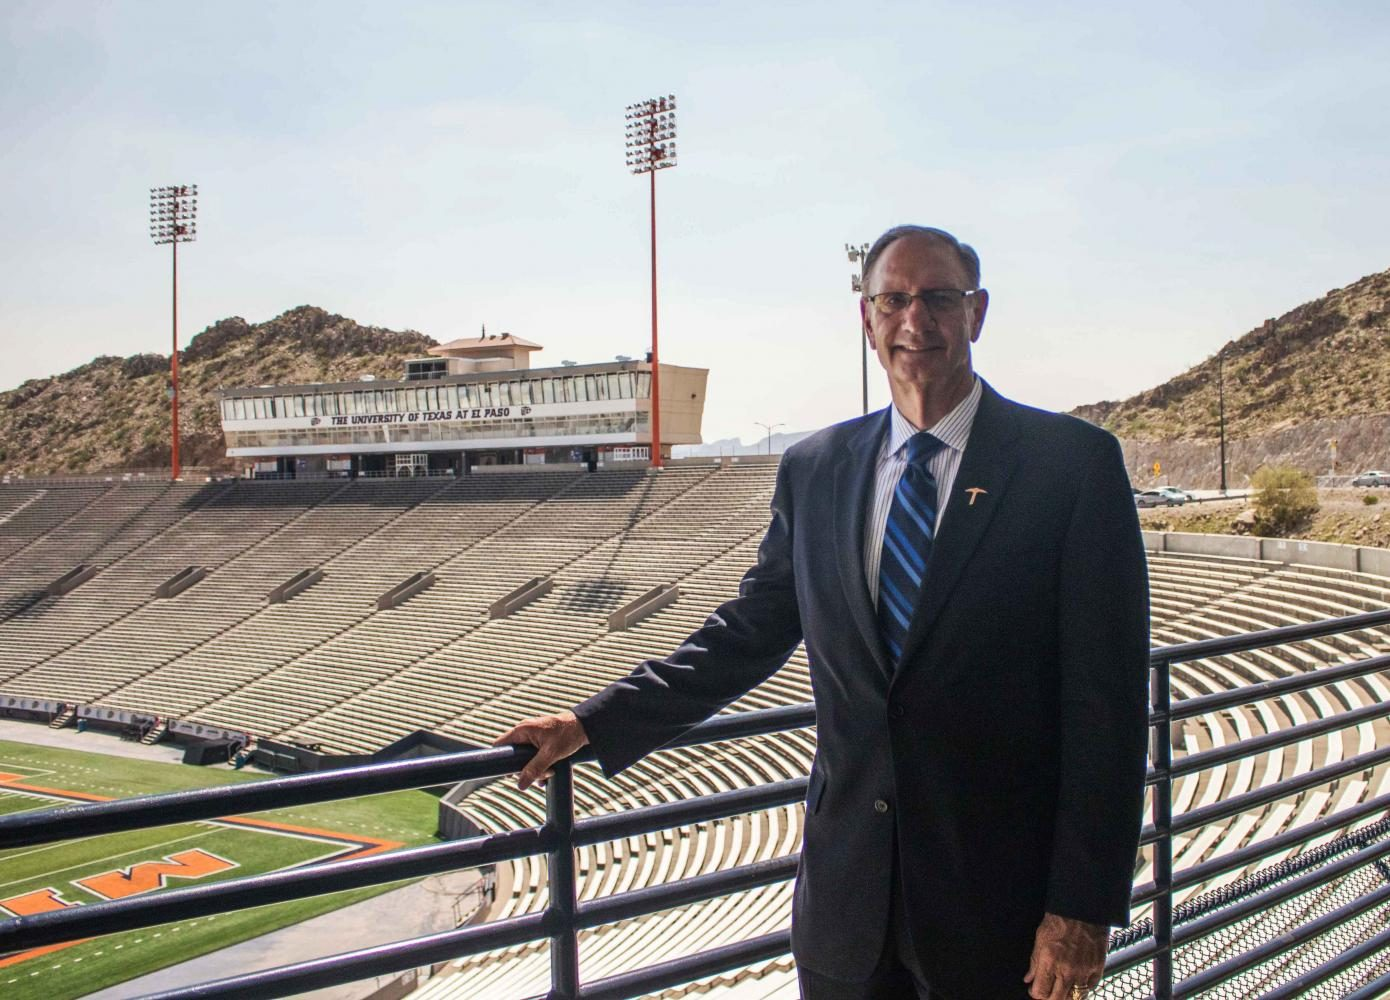 Former+UTEP+Director+of+Athletics+Bob+Stull+shares+his+memories+and+says+his+goodbyes+to+El+Paso.